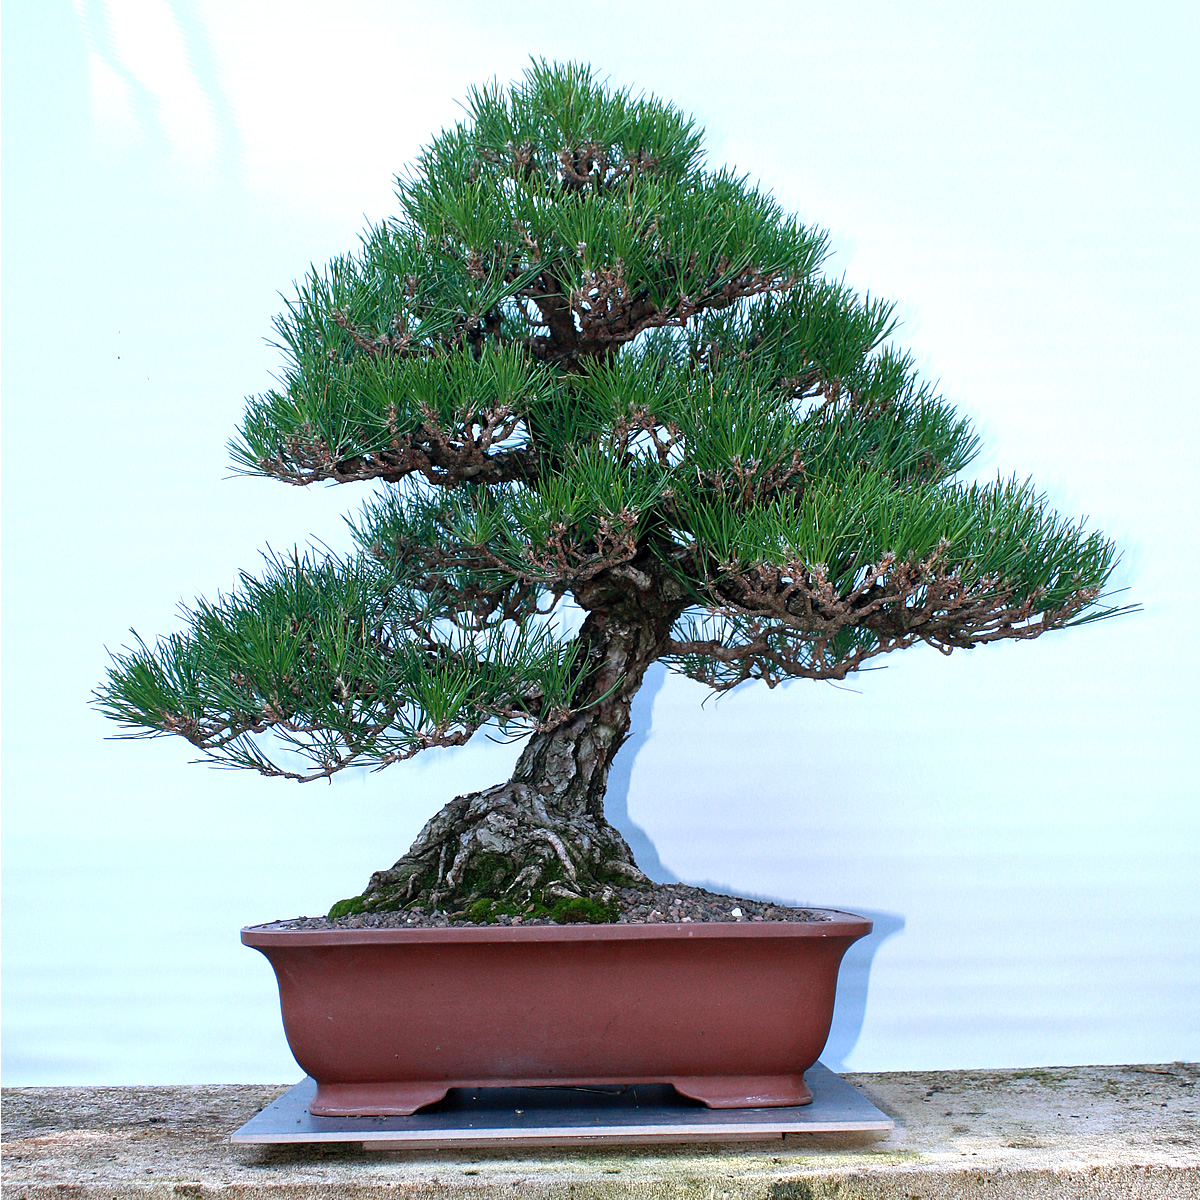 KuroMatsu - Back from 2yrs on show at the National Bonsai Collection Canberra